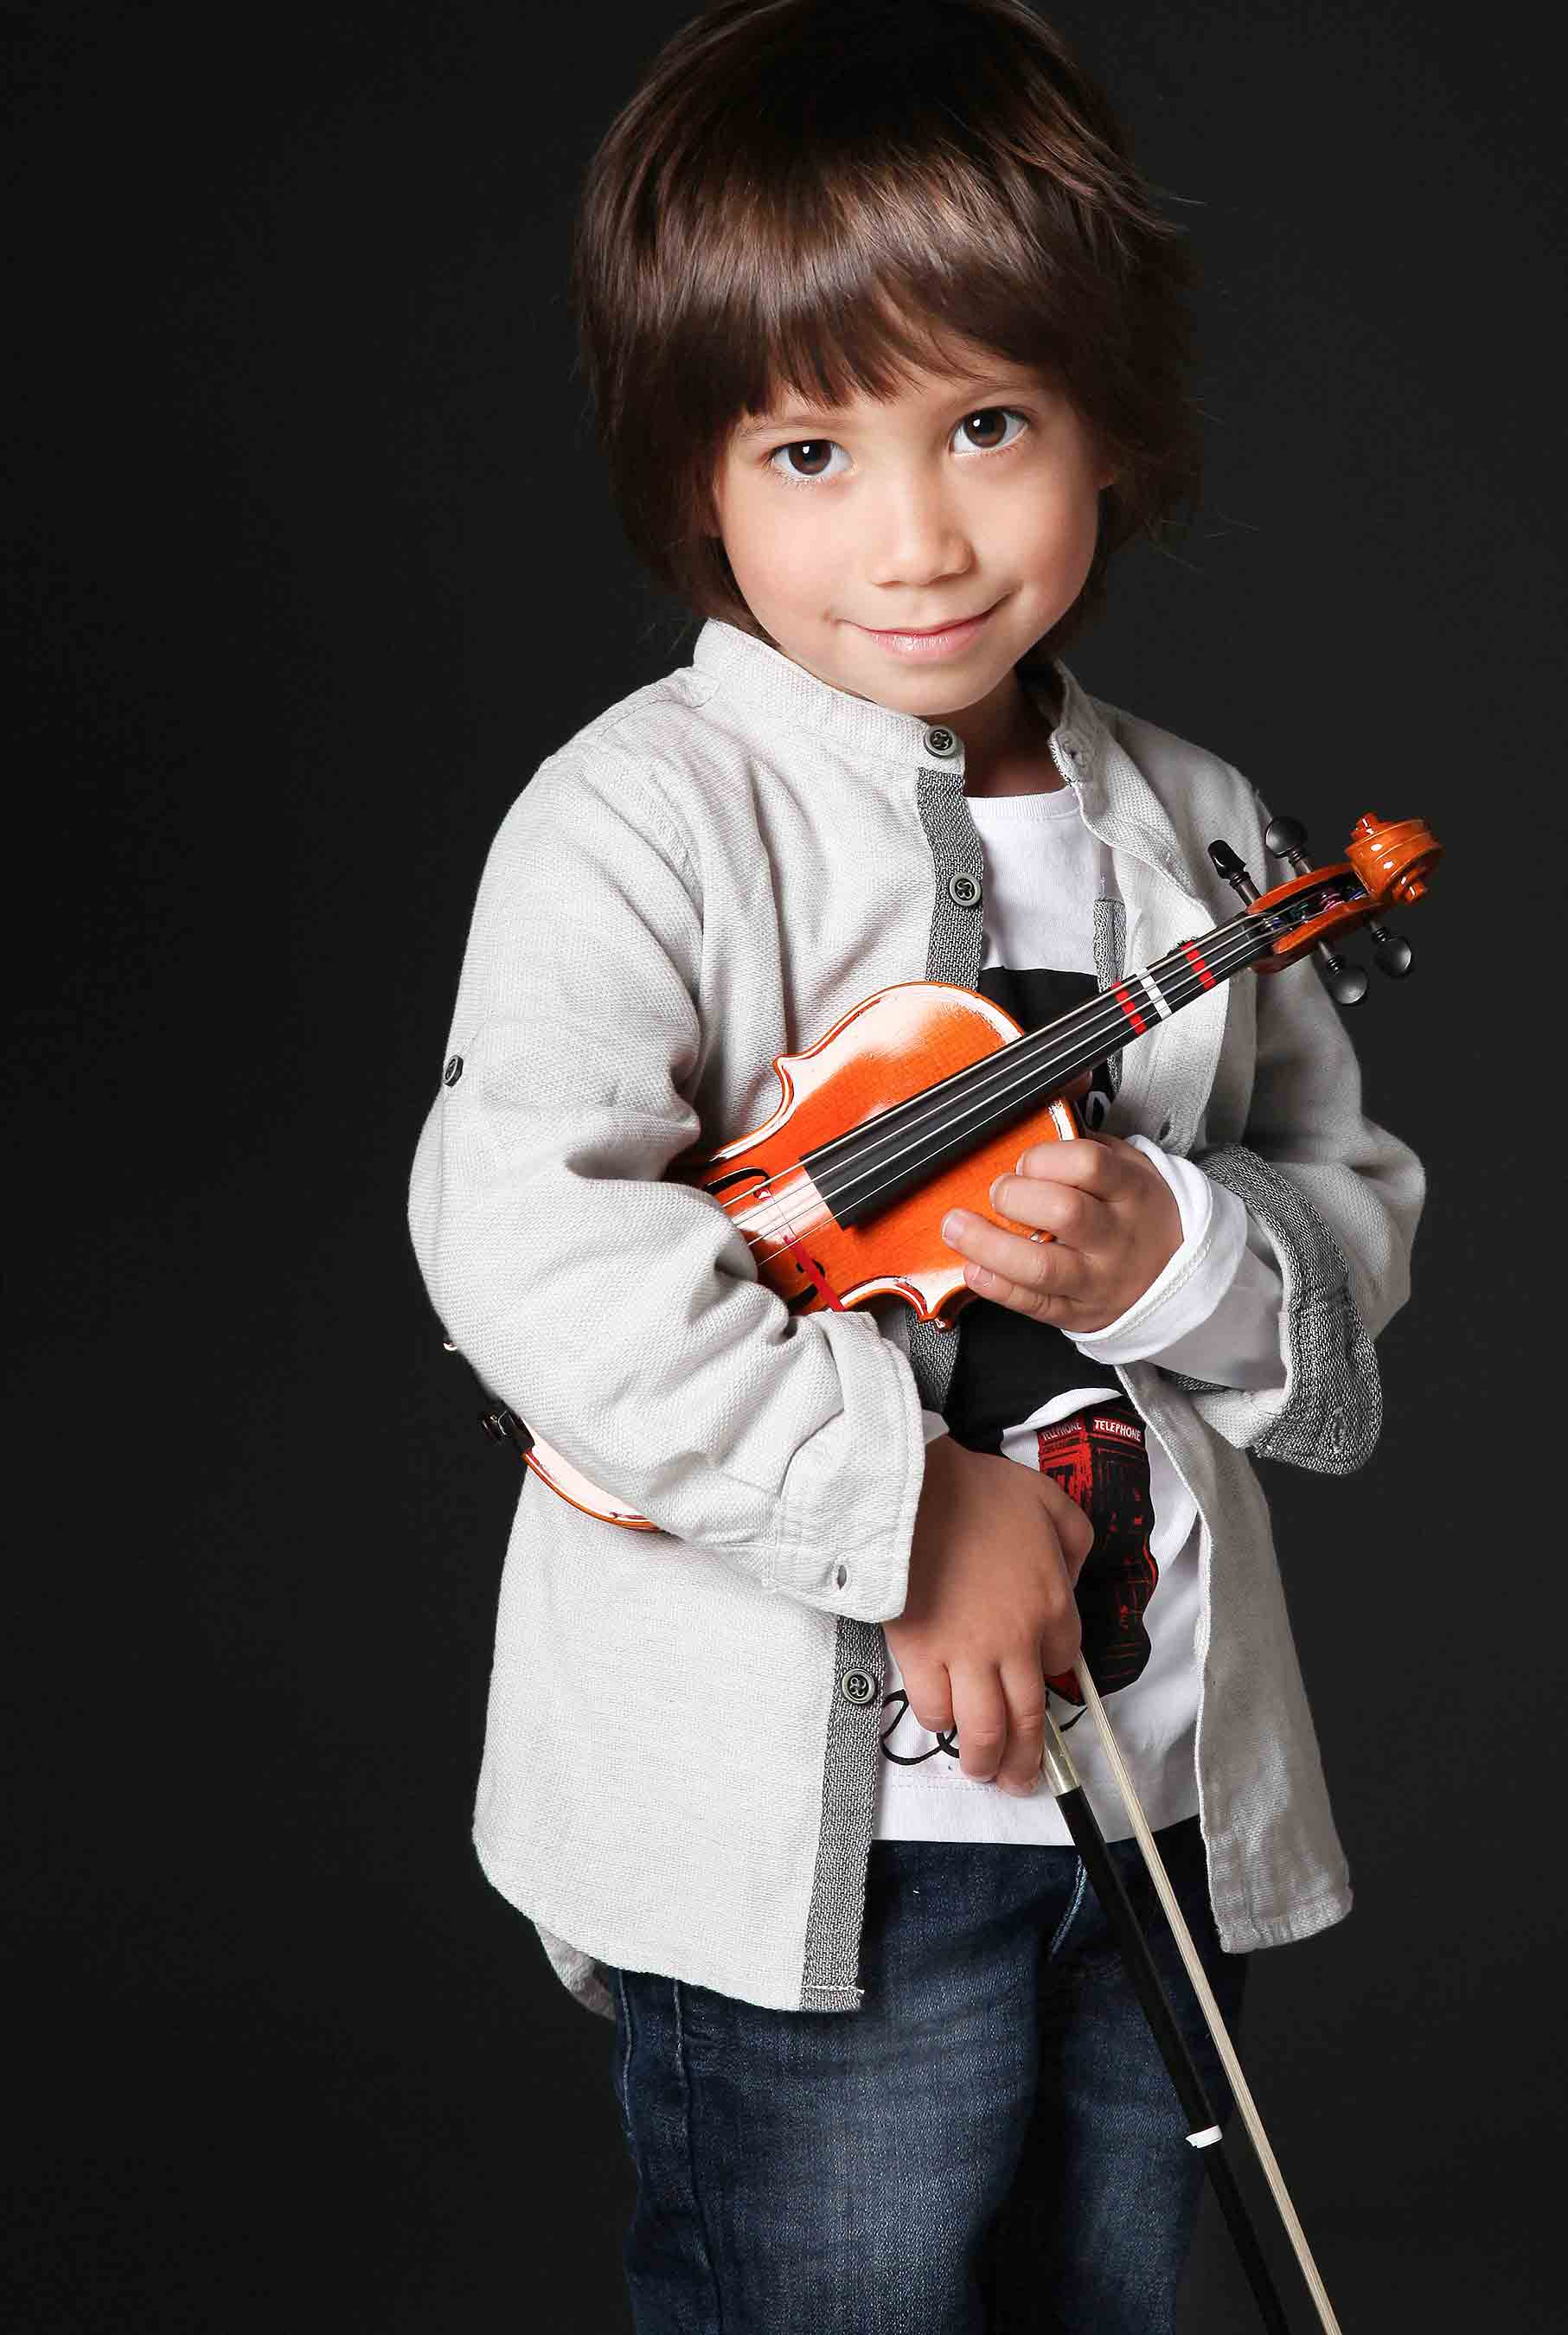 child-photographers-london-ontario-family-portraits-kids-headshots-actor-musician